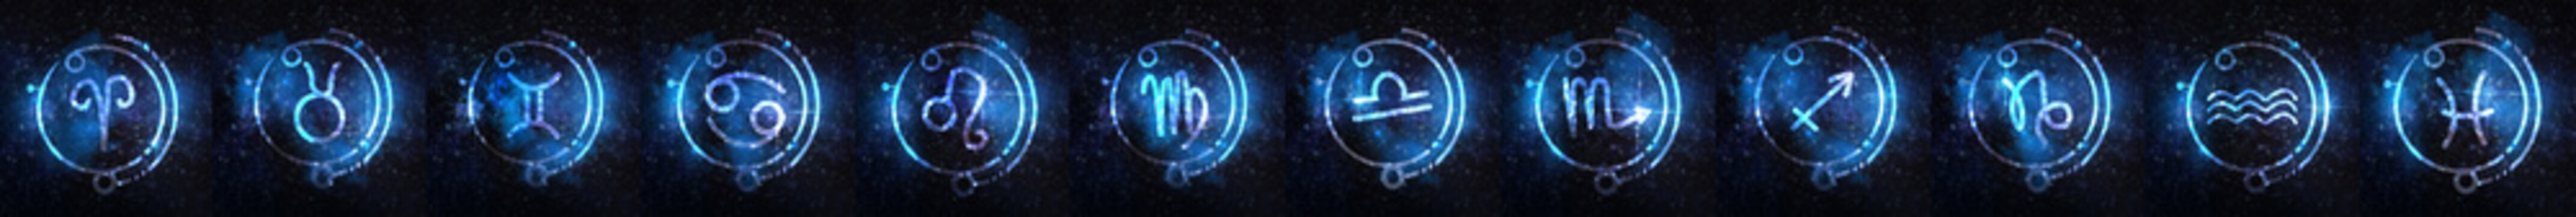 Set of Astrology signs against starry sky